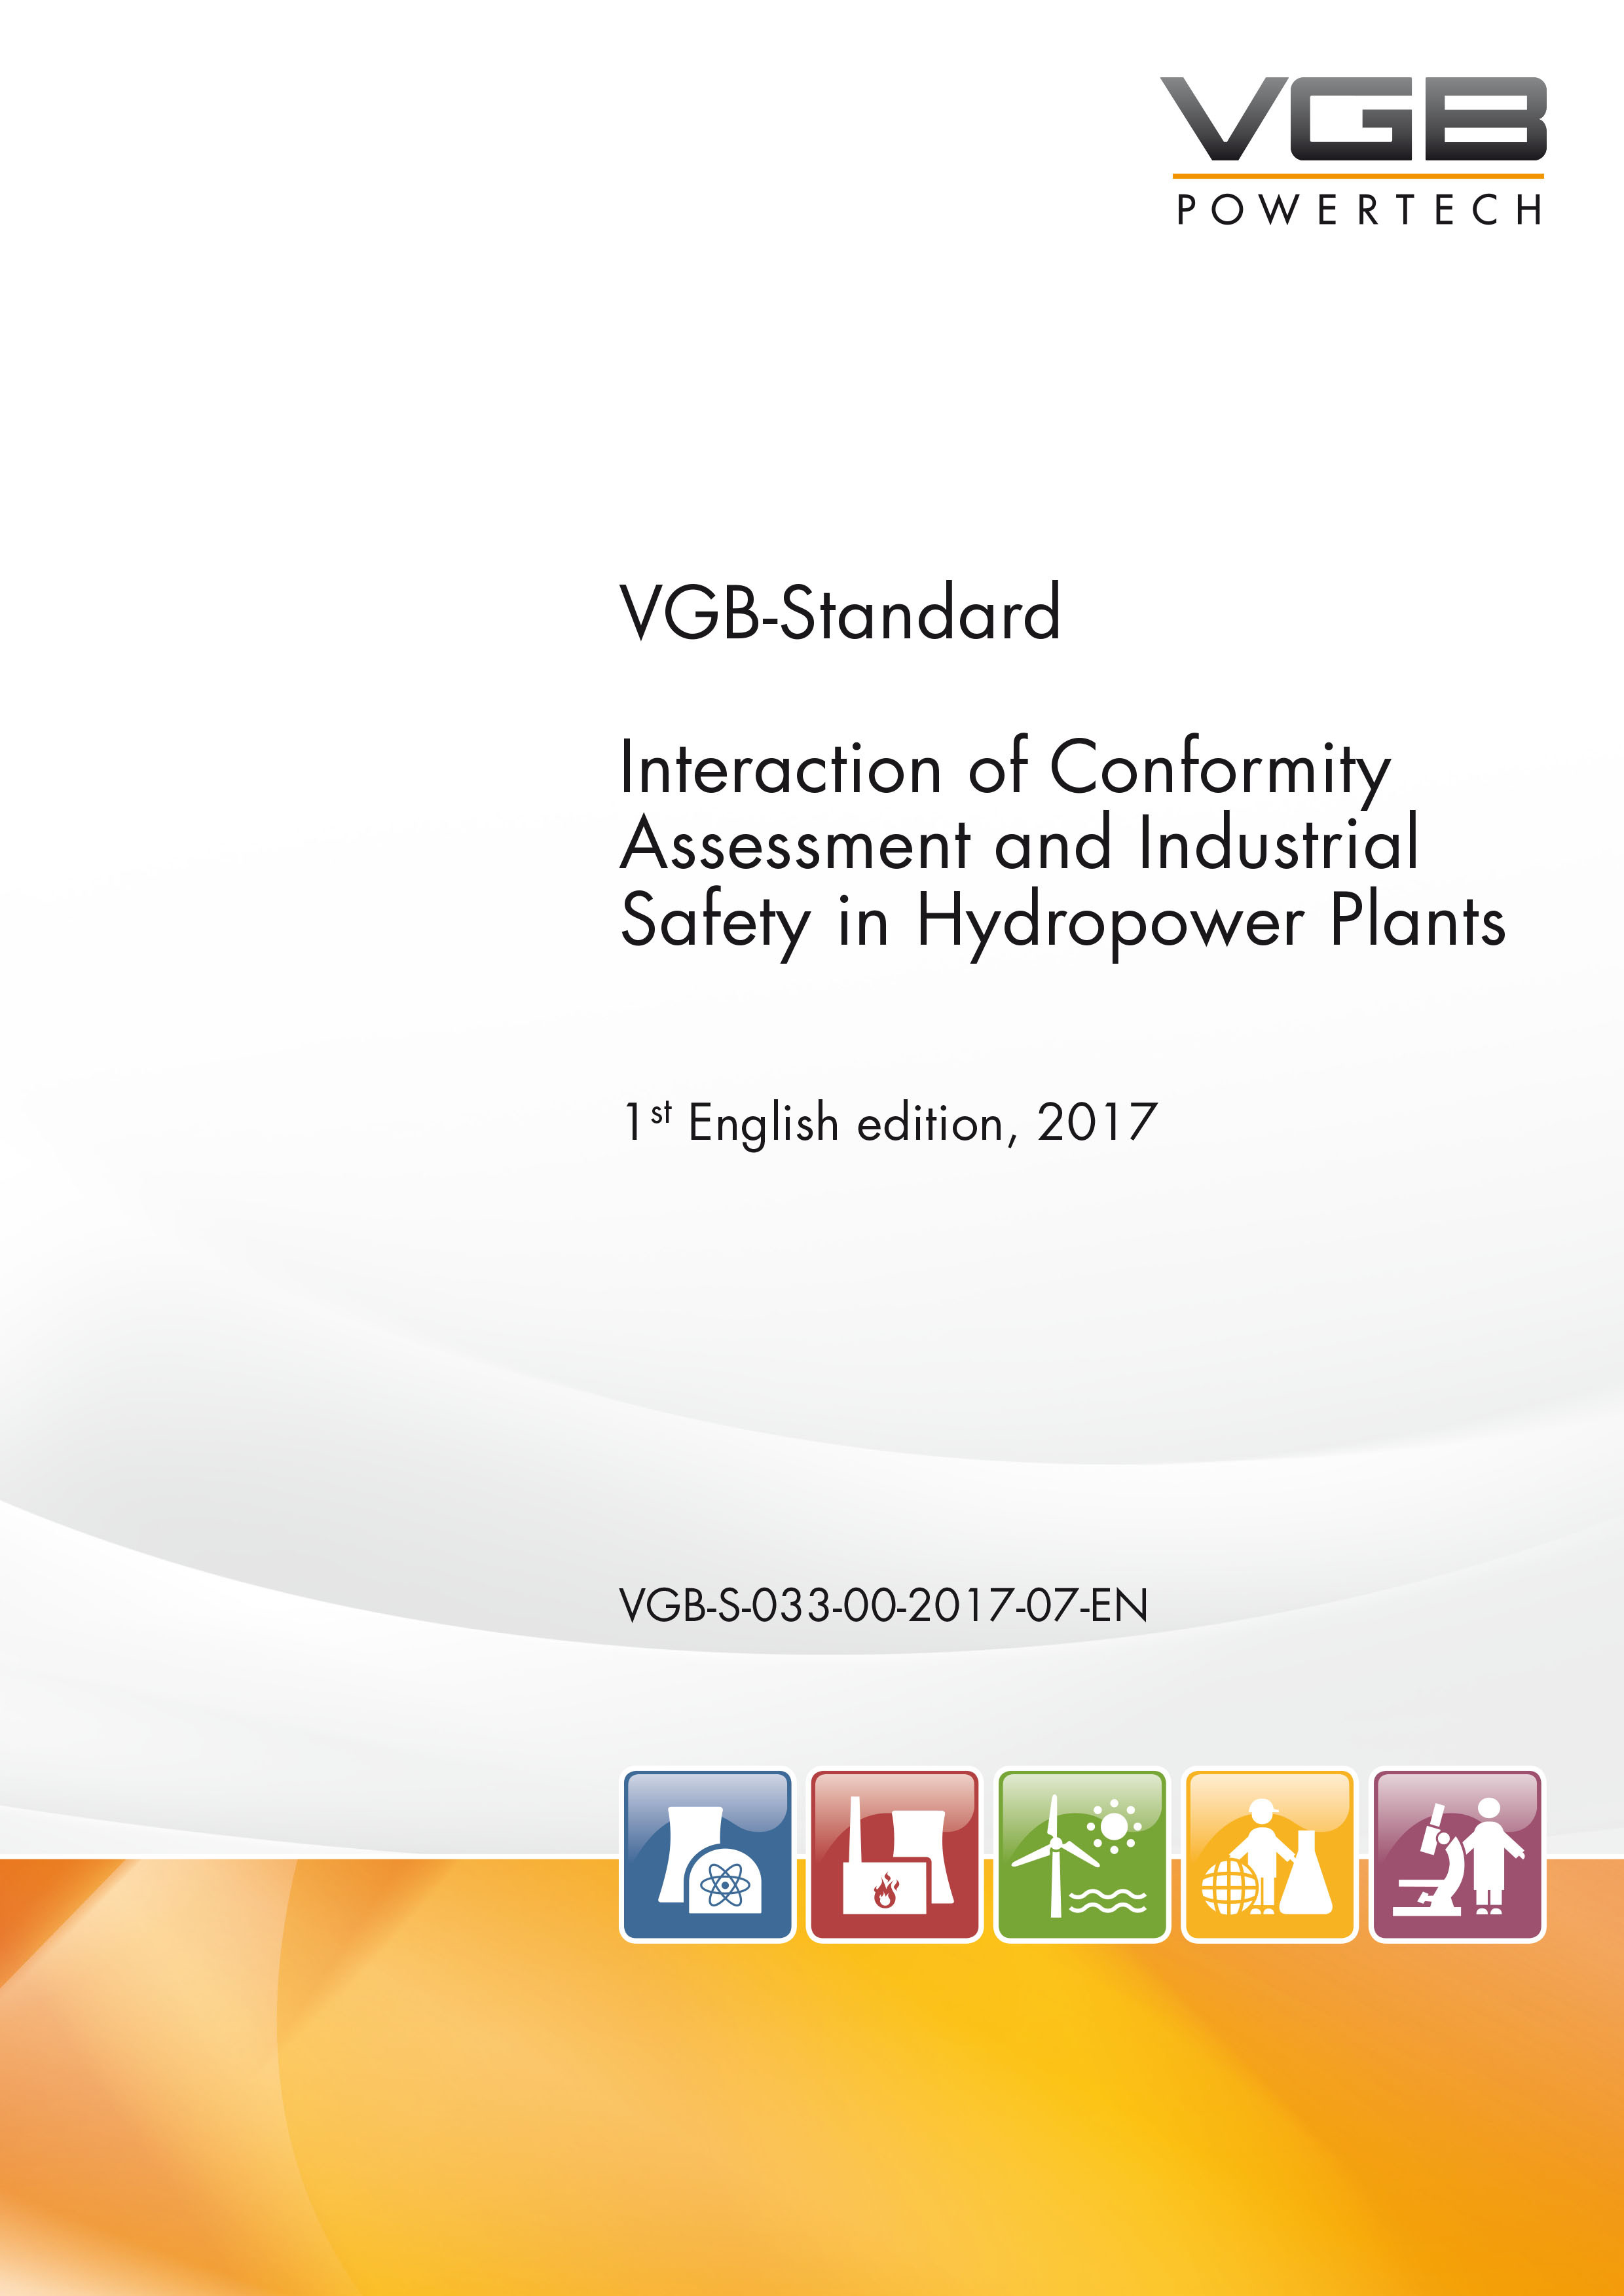 Interaction of Conformity Assessment and Industrial Safety in Hydropower Plants